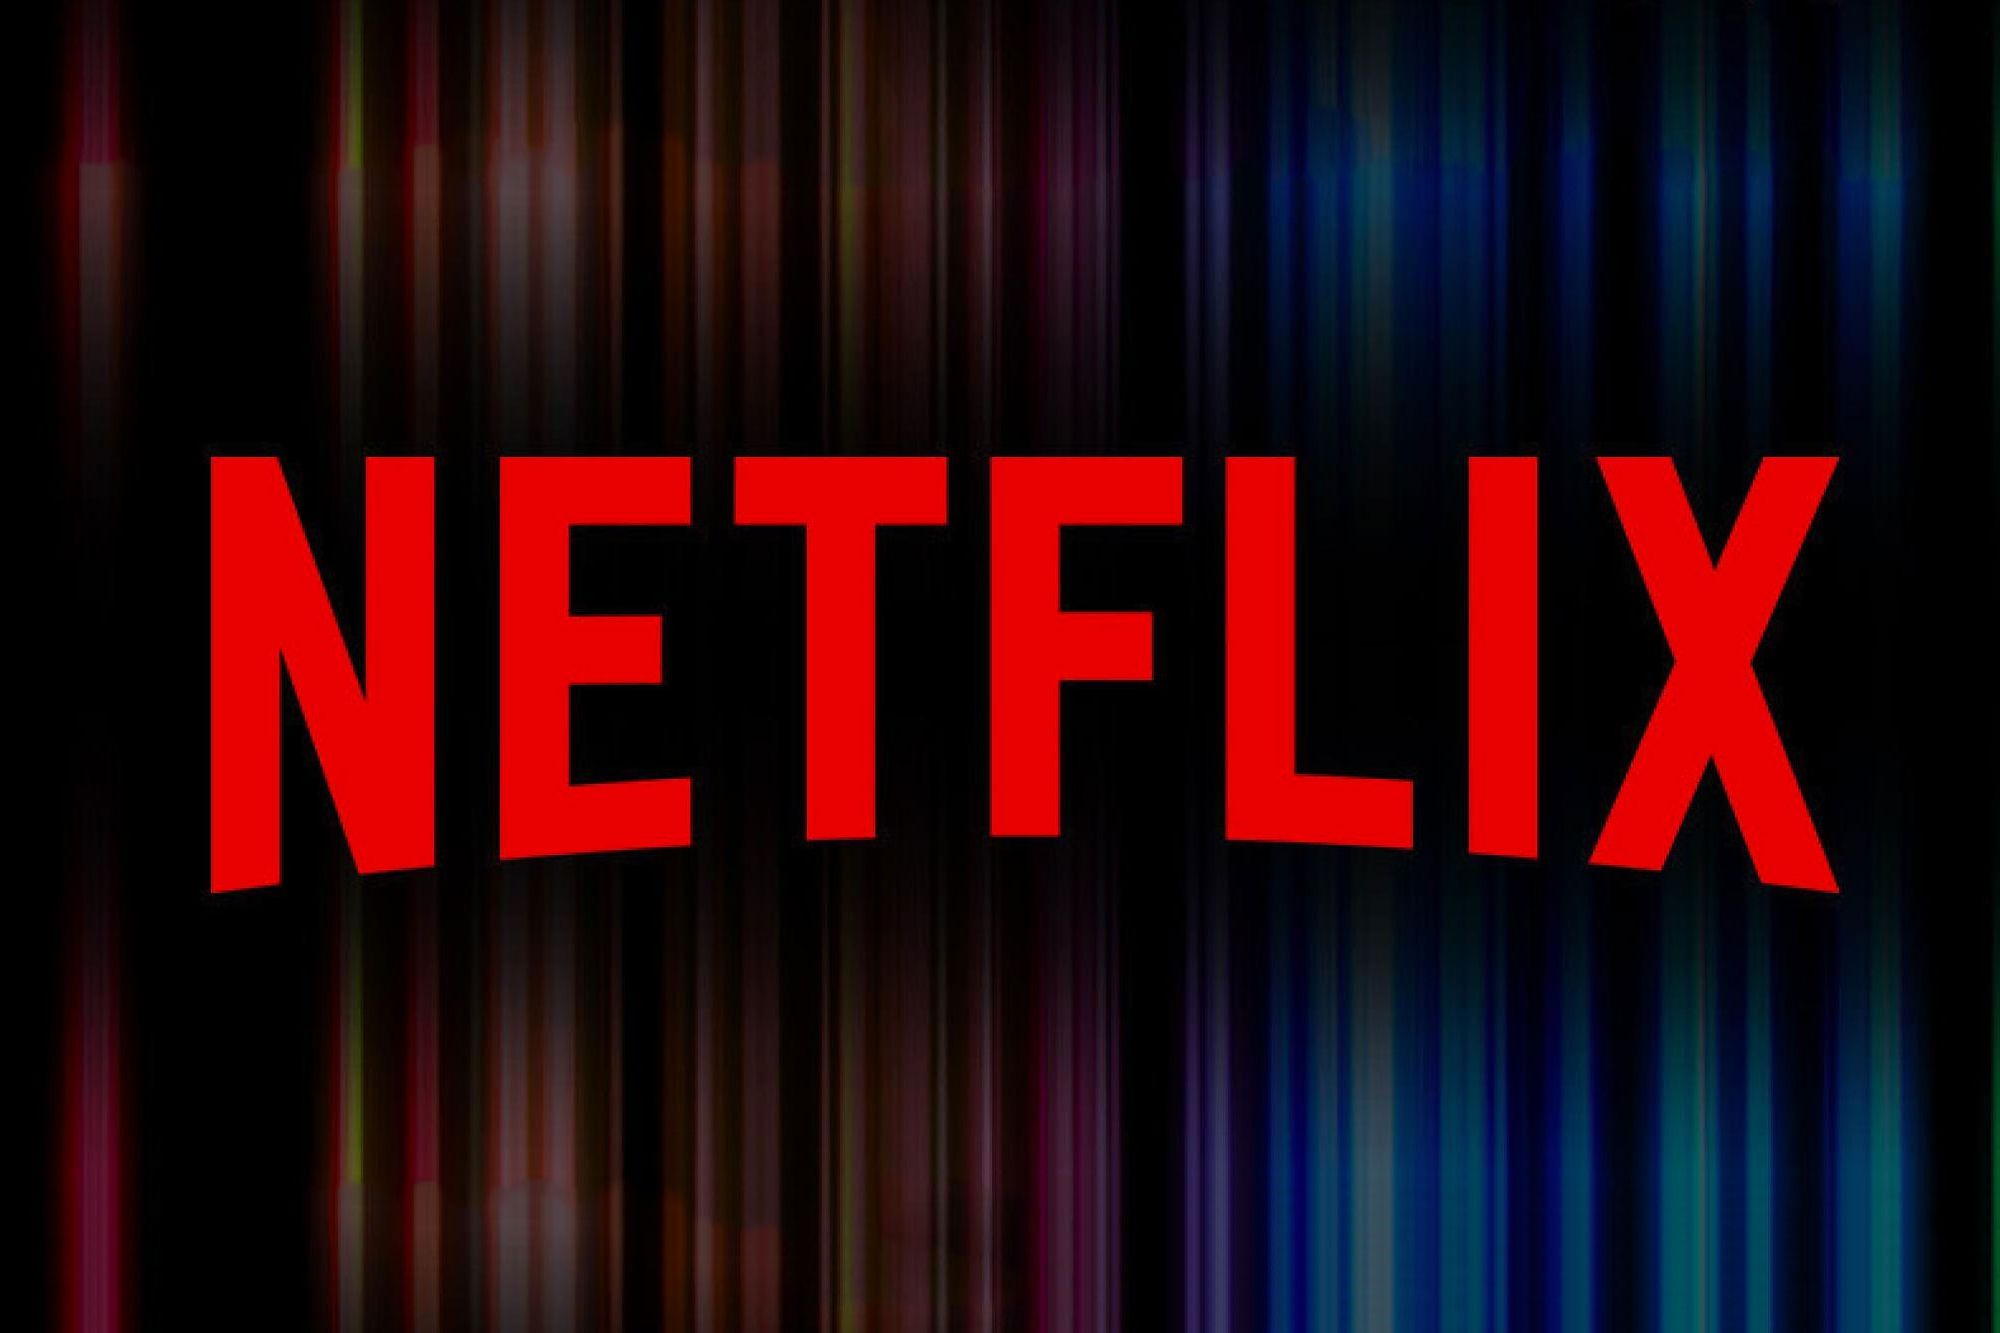 Netflix Finally Adds Top 10 Lists for Its Most Popular Content